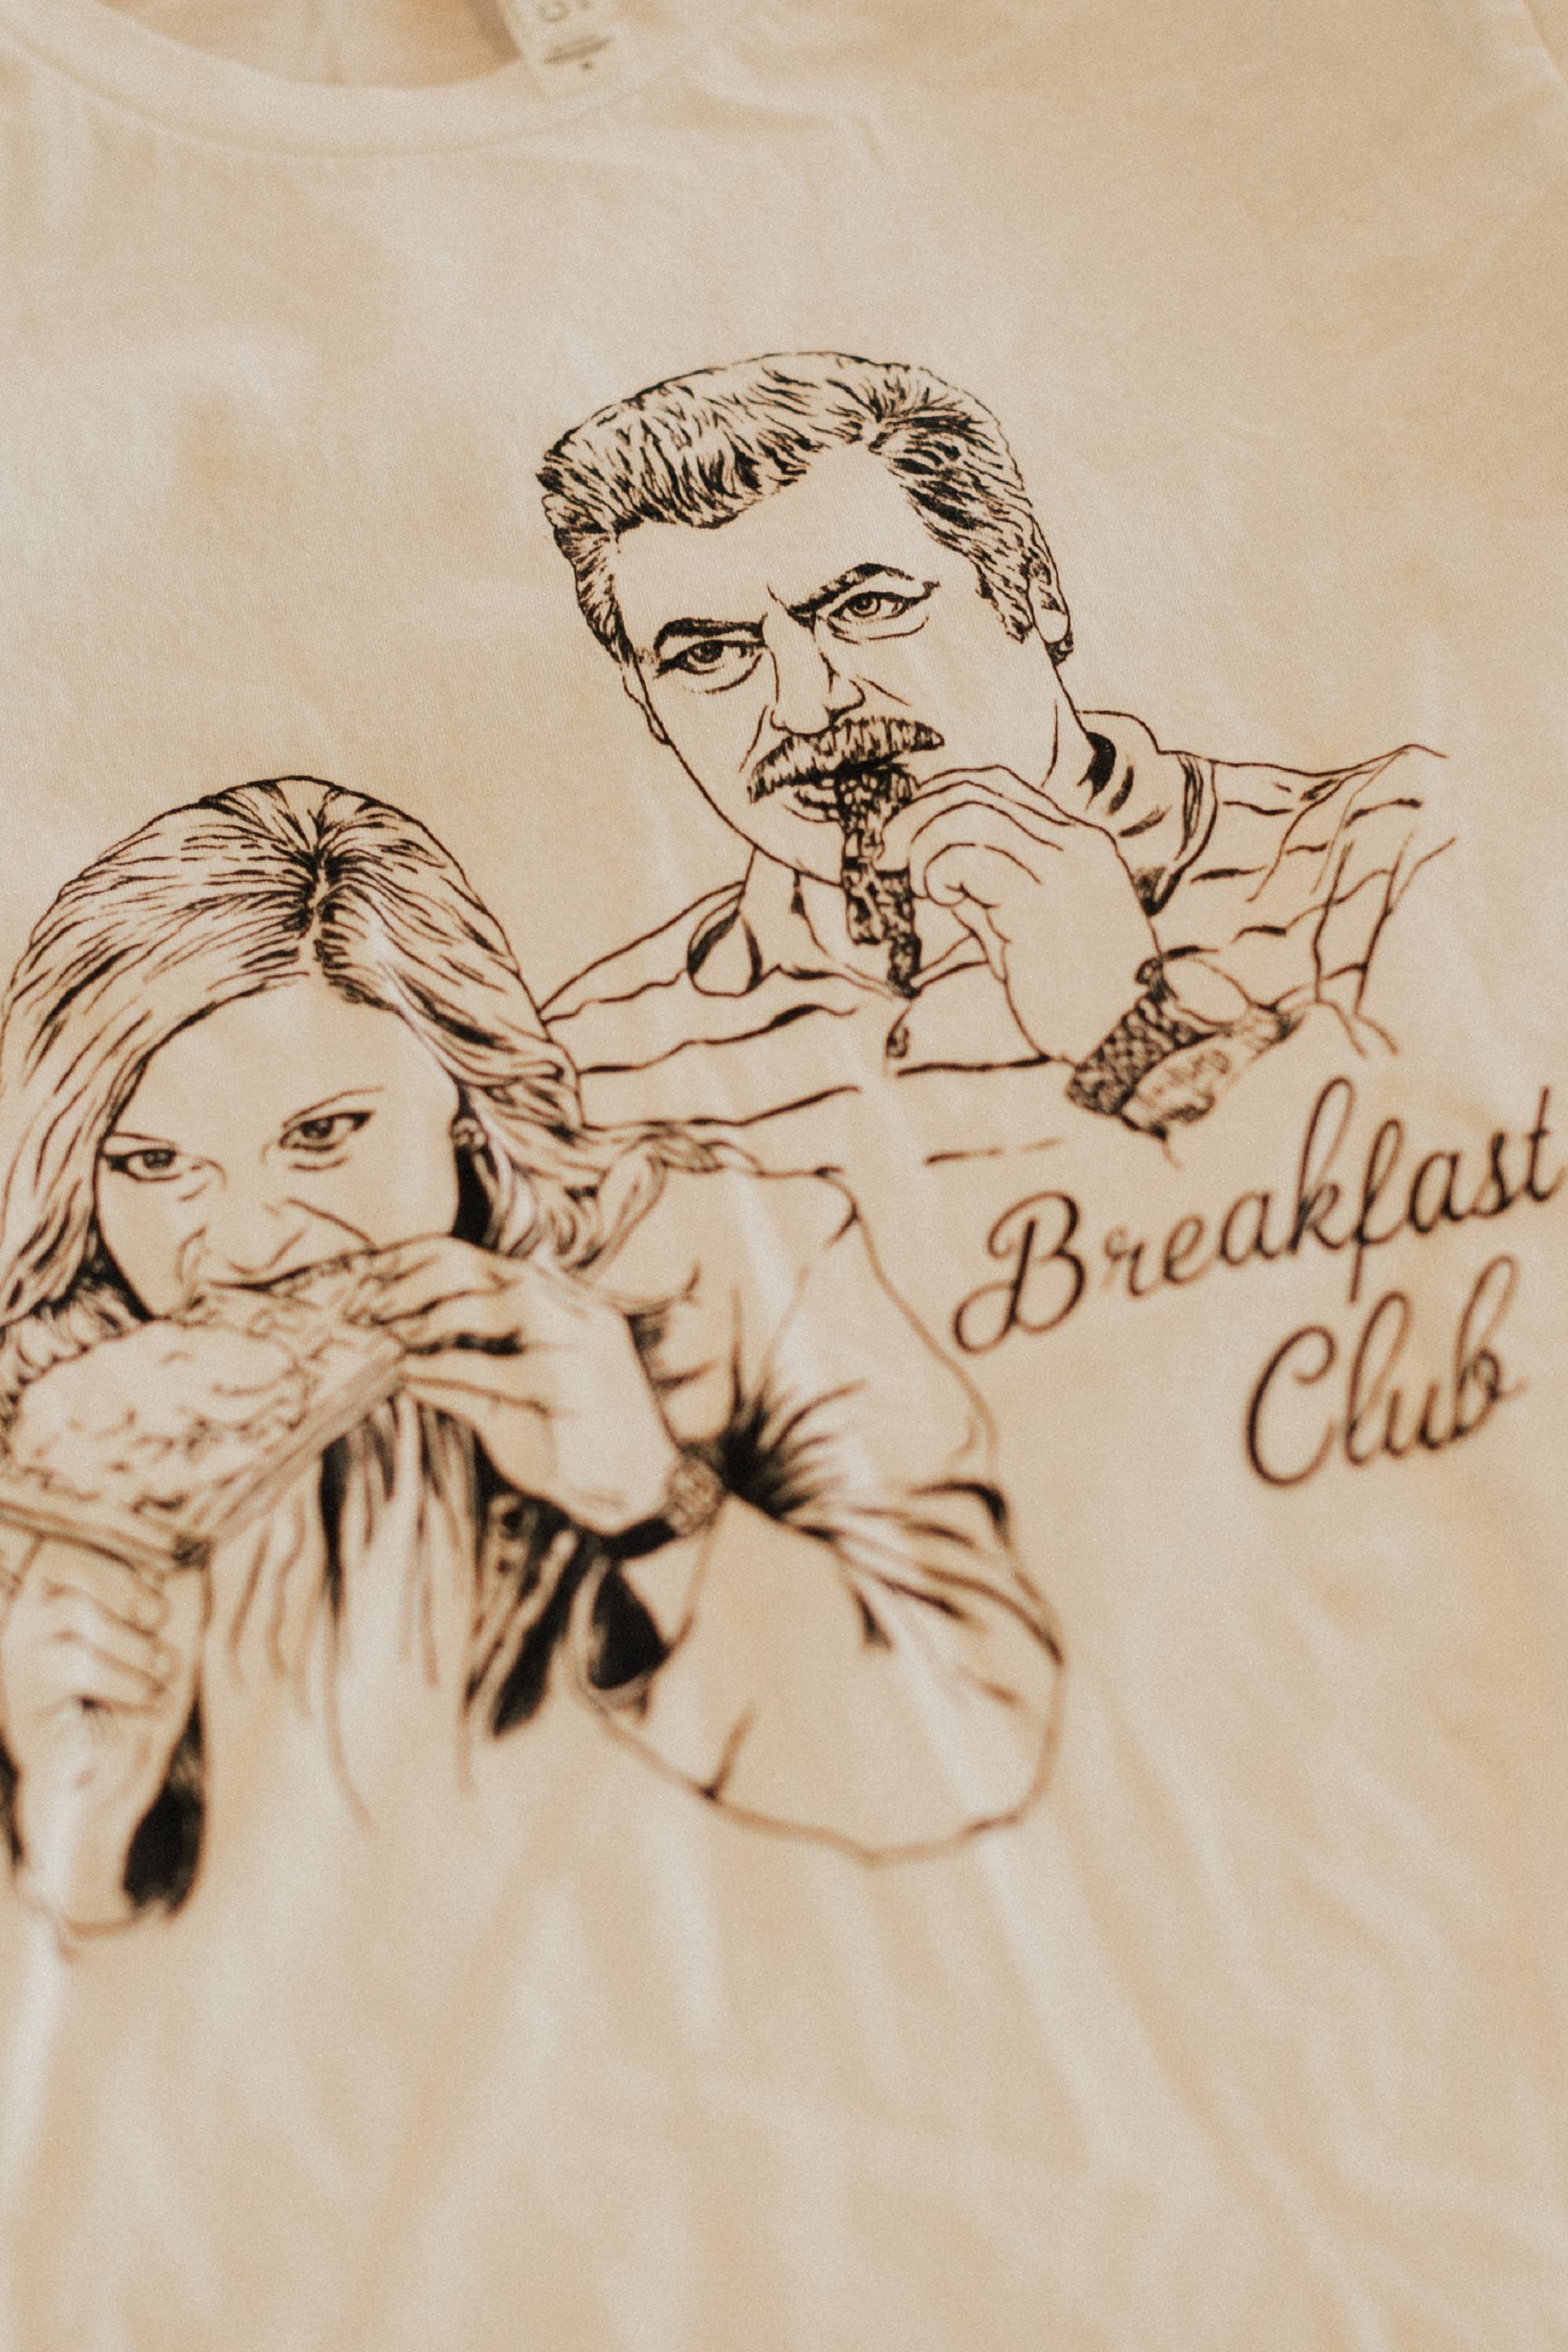 Parks and Rec Breakfast Club tshirt